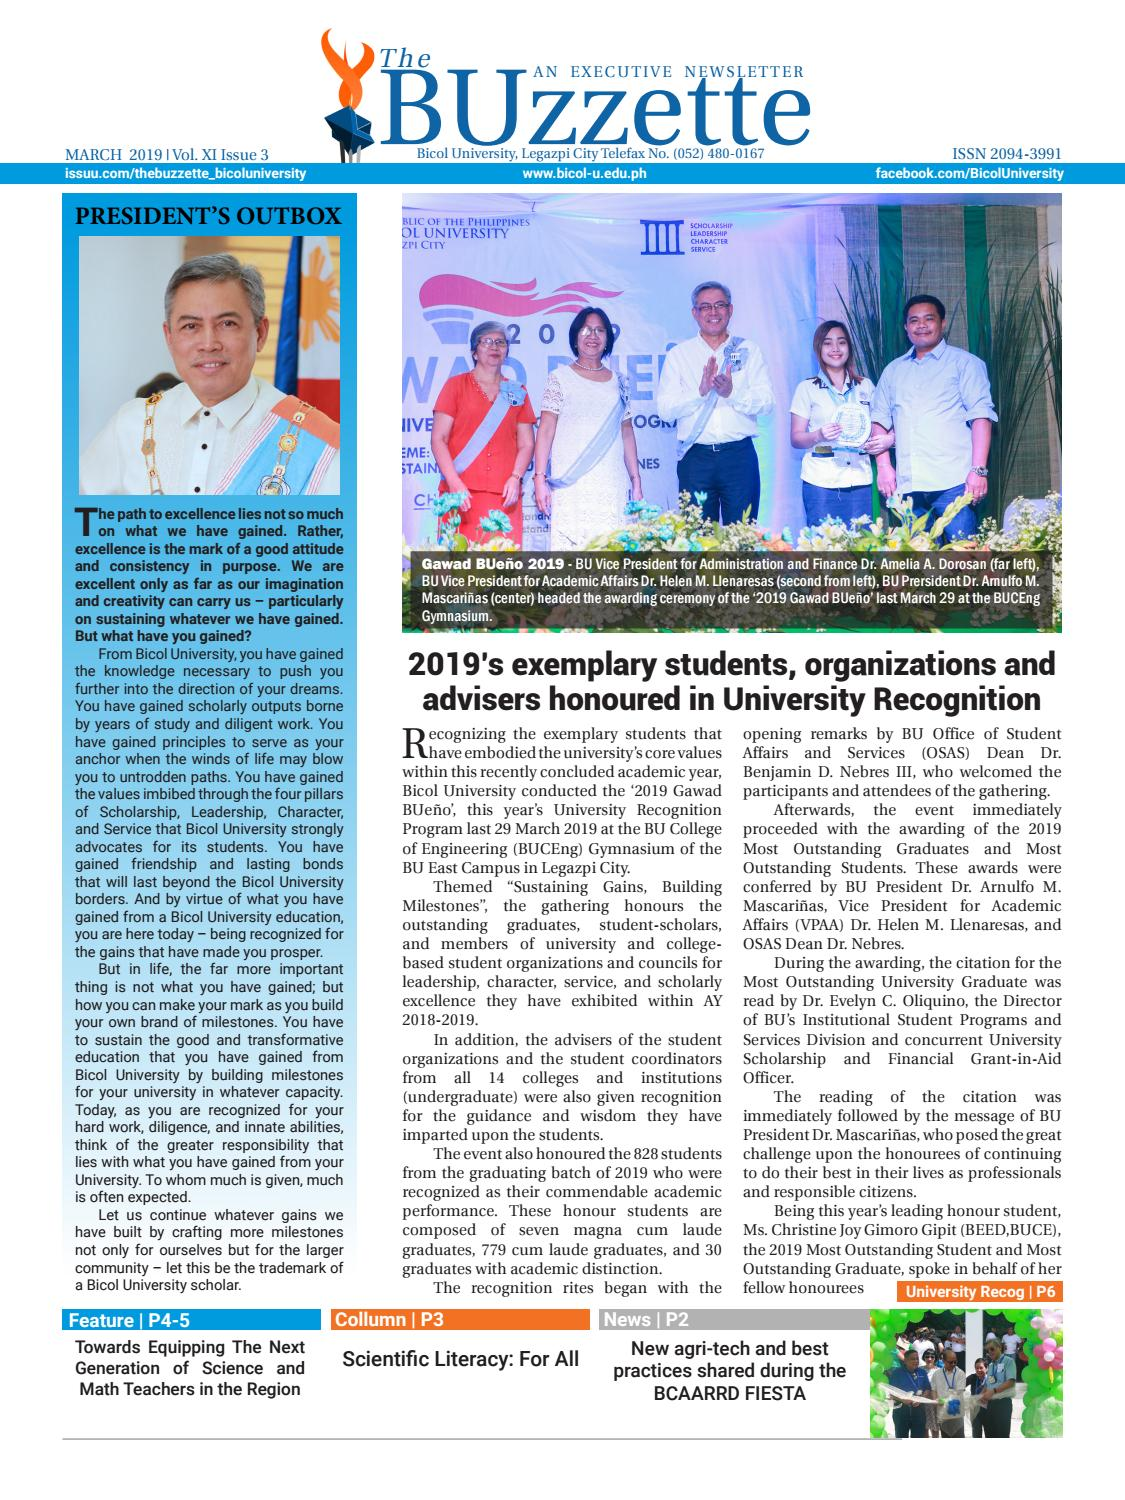 March 2019 by The Buzzette - Bicol University - issuu